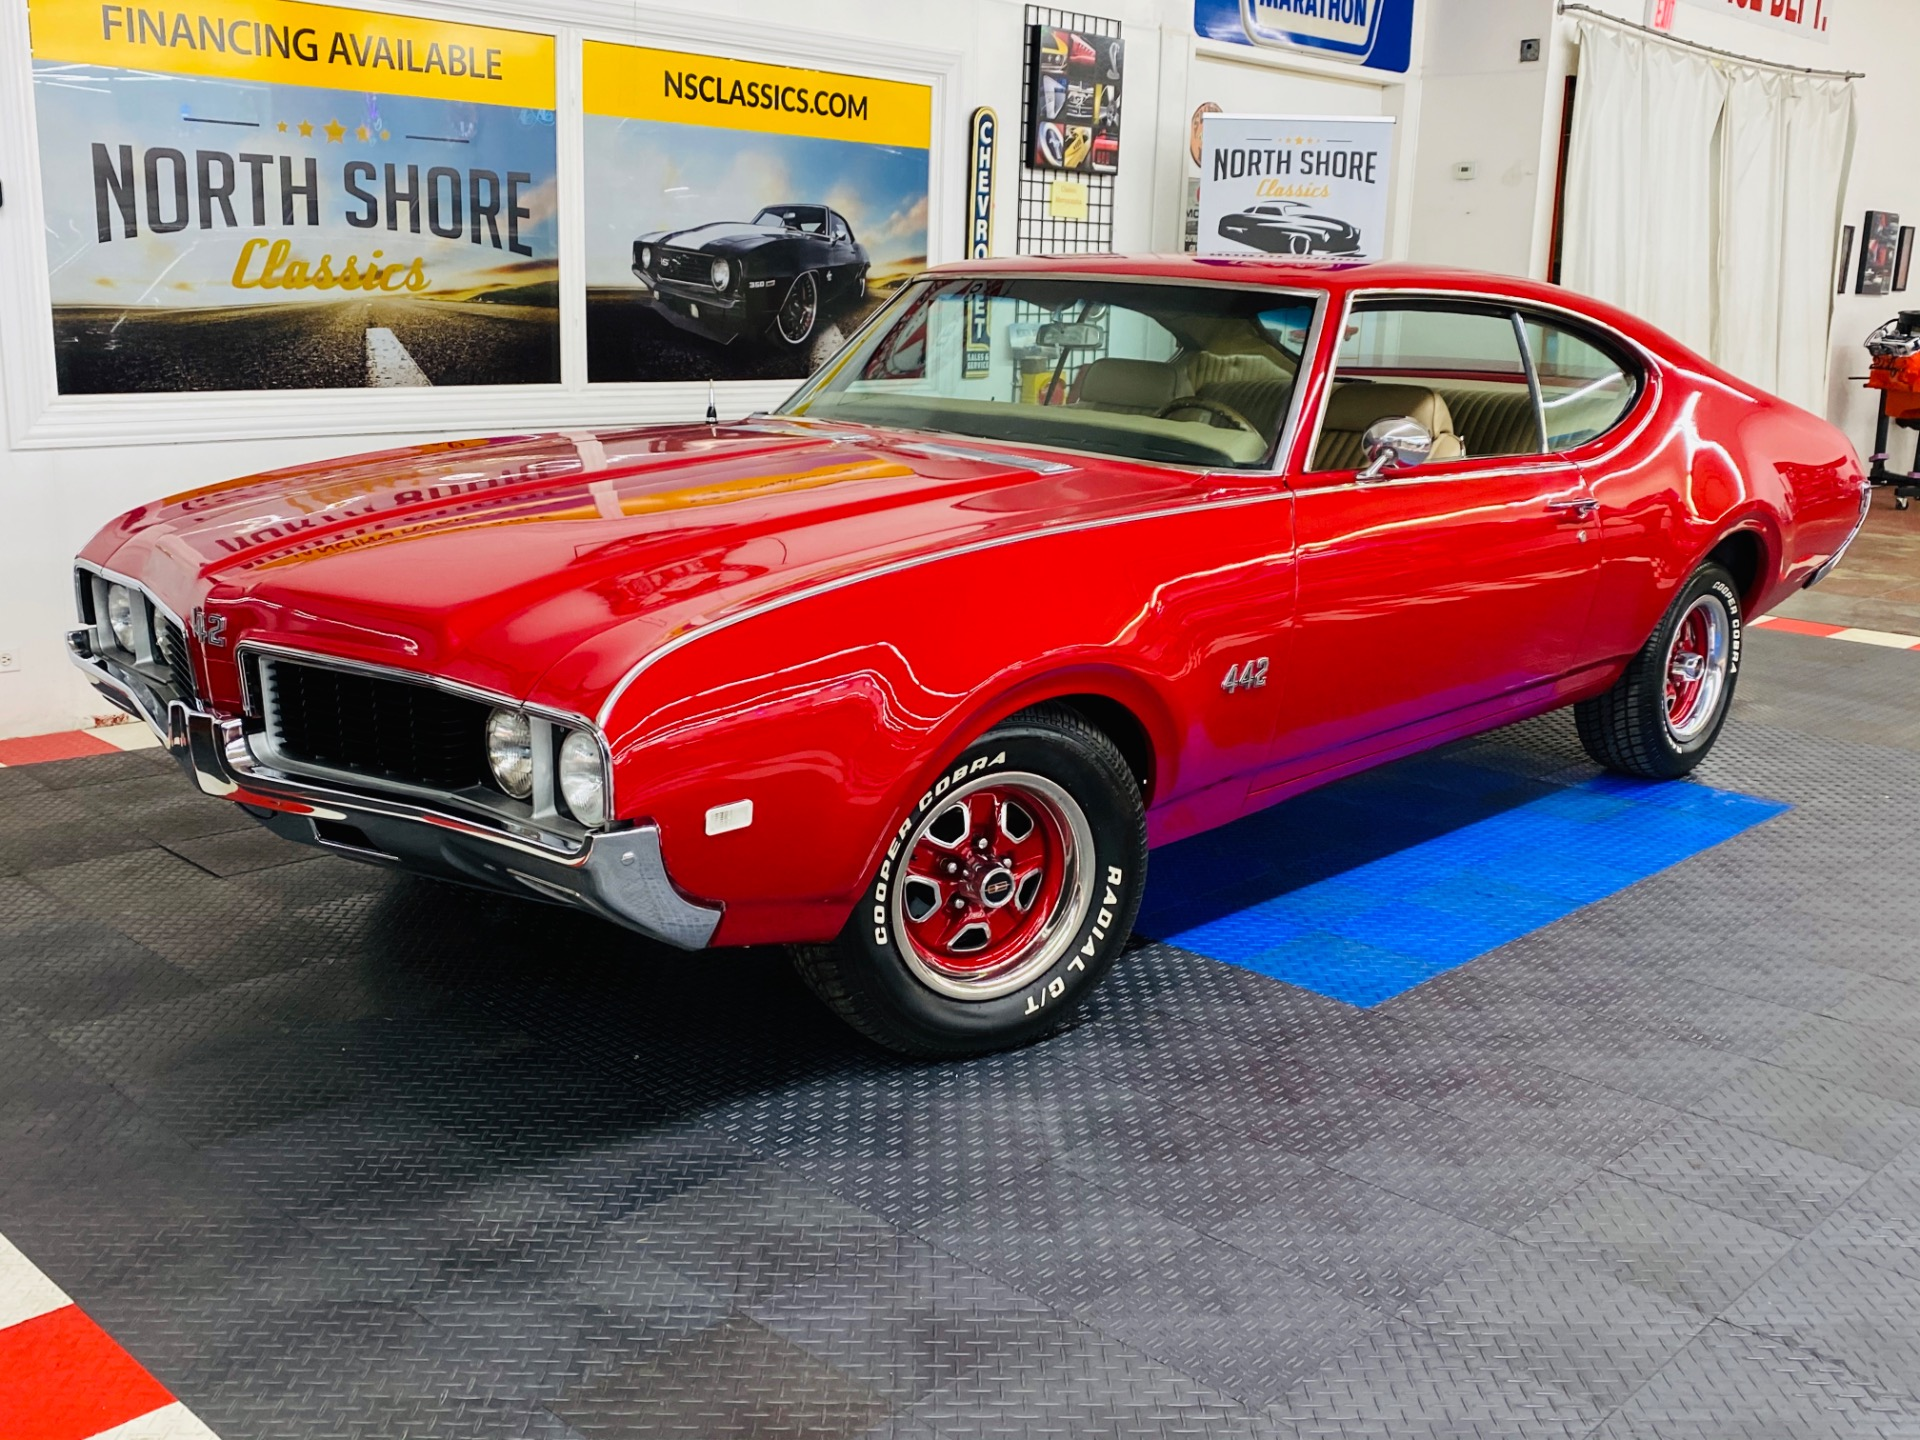 Used 1969 Oldsmobile Cutlass - 442 TRIBUTE - NUMBERS MATCHING - BUCKET SEATS - SEE VIDEO | Mundelein, IL